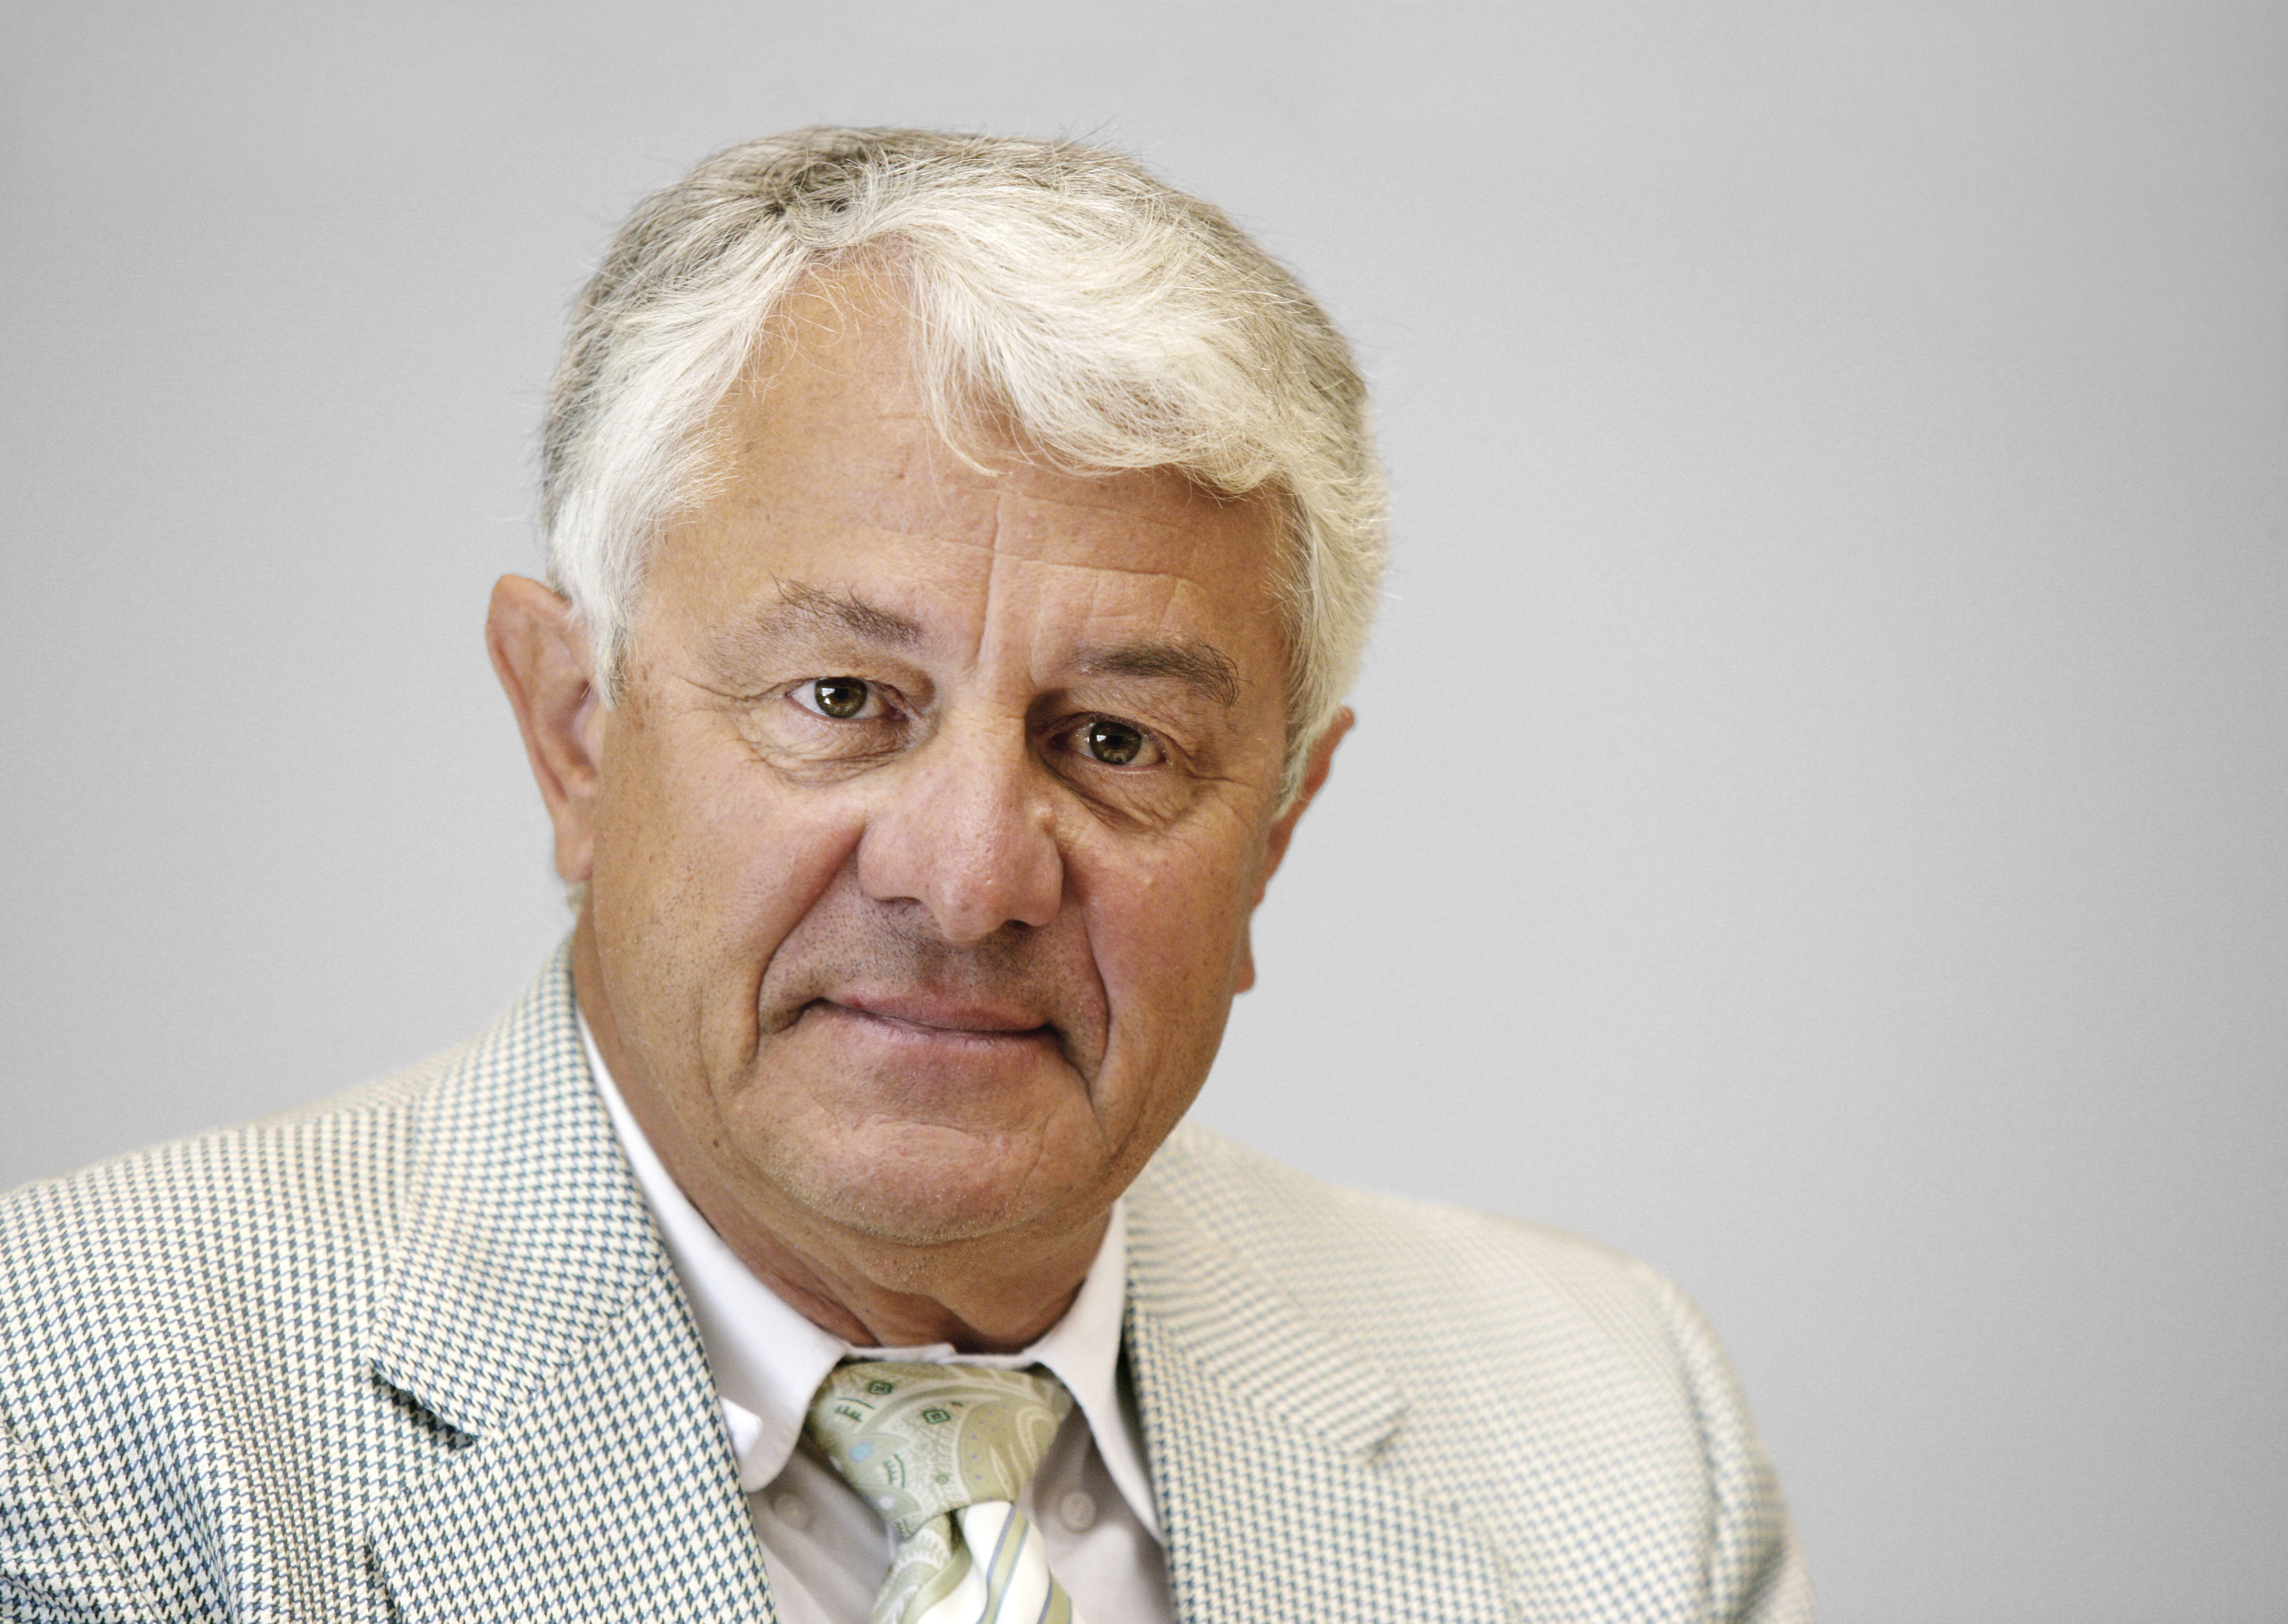 The 73-year old son of father (?) and mother(?), 176 cm tall Hasso Plattner in 2017 photo